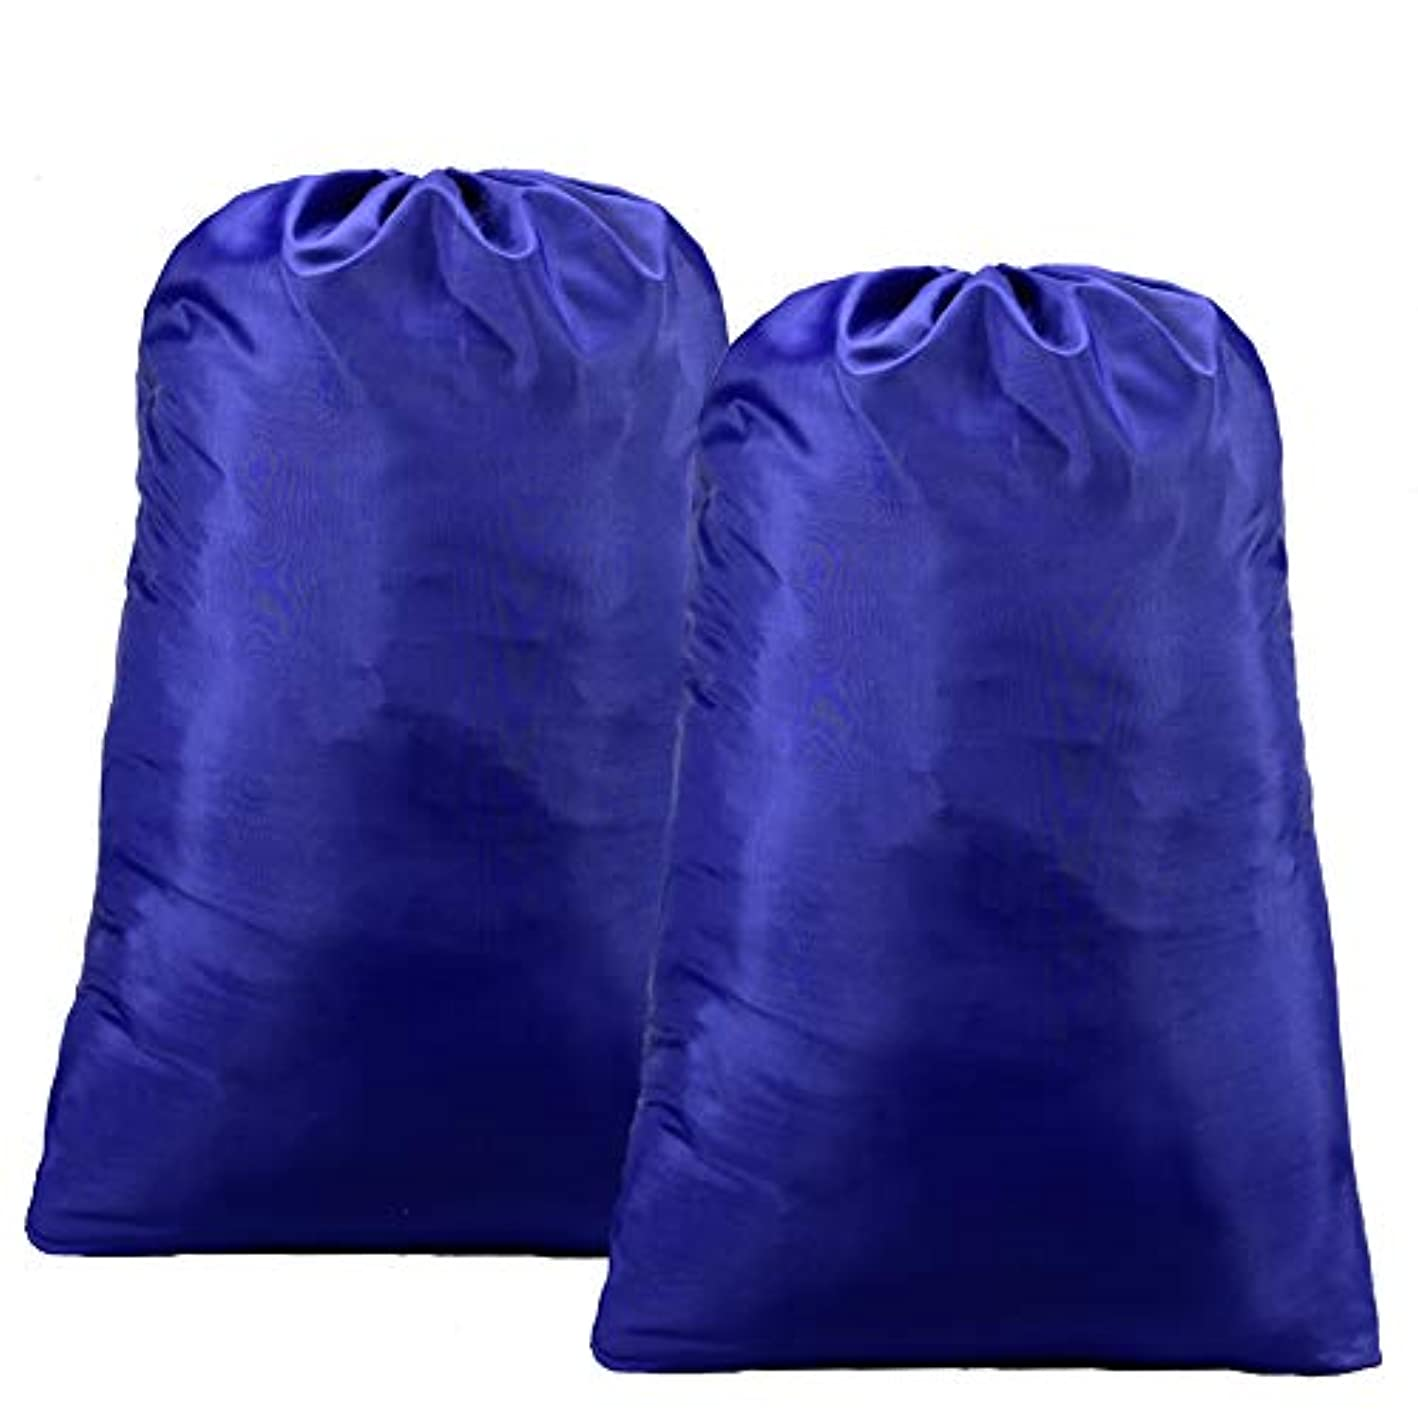 """SOMIDE 2 Pack Extra Large Laundry Bags, 28"""" x 40"""", Heavy Duty Polyester, Ripstop Drawstring Closure Machine Washable, Dirty Clothes Bag, Blue"""